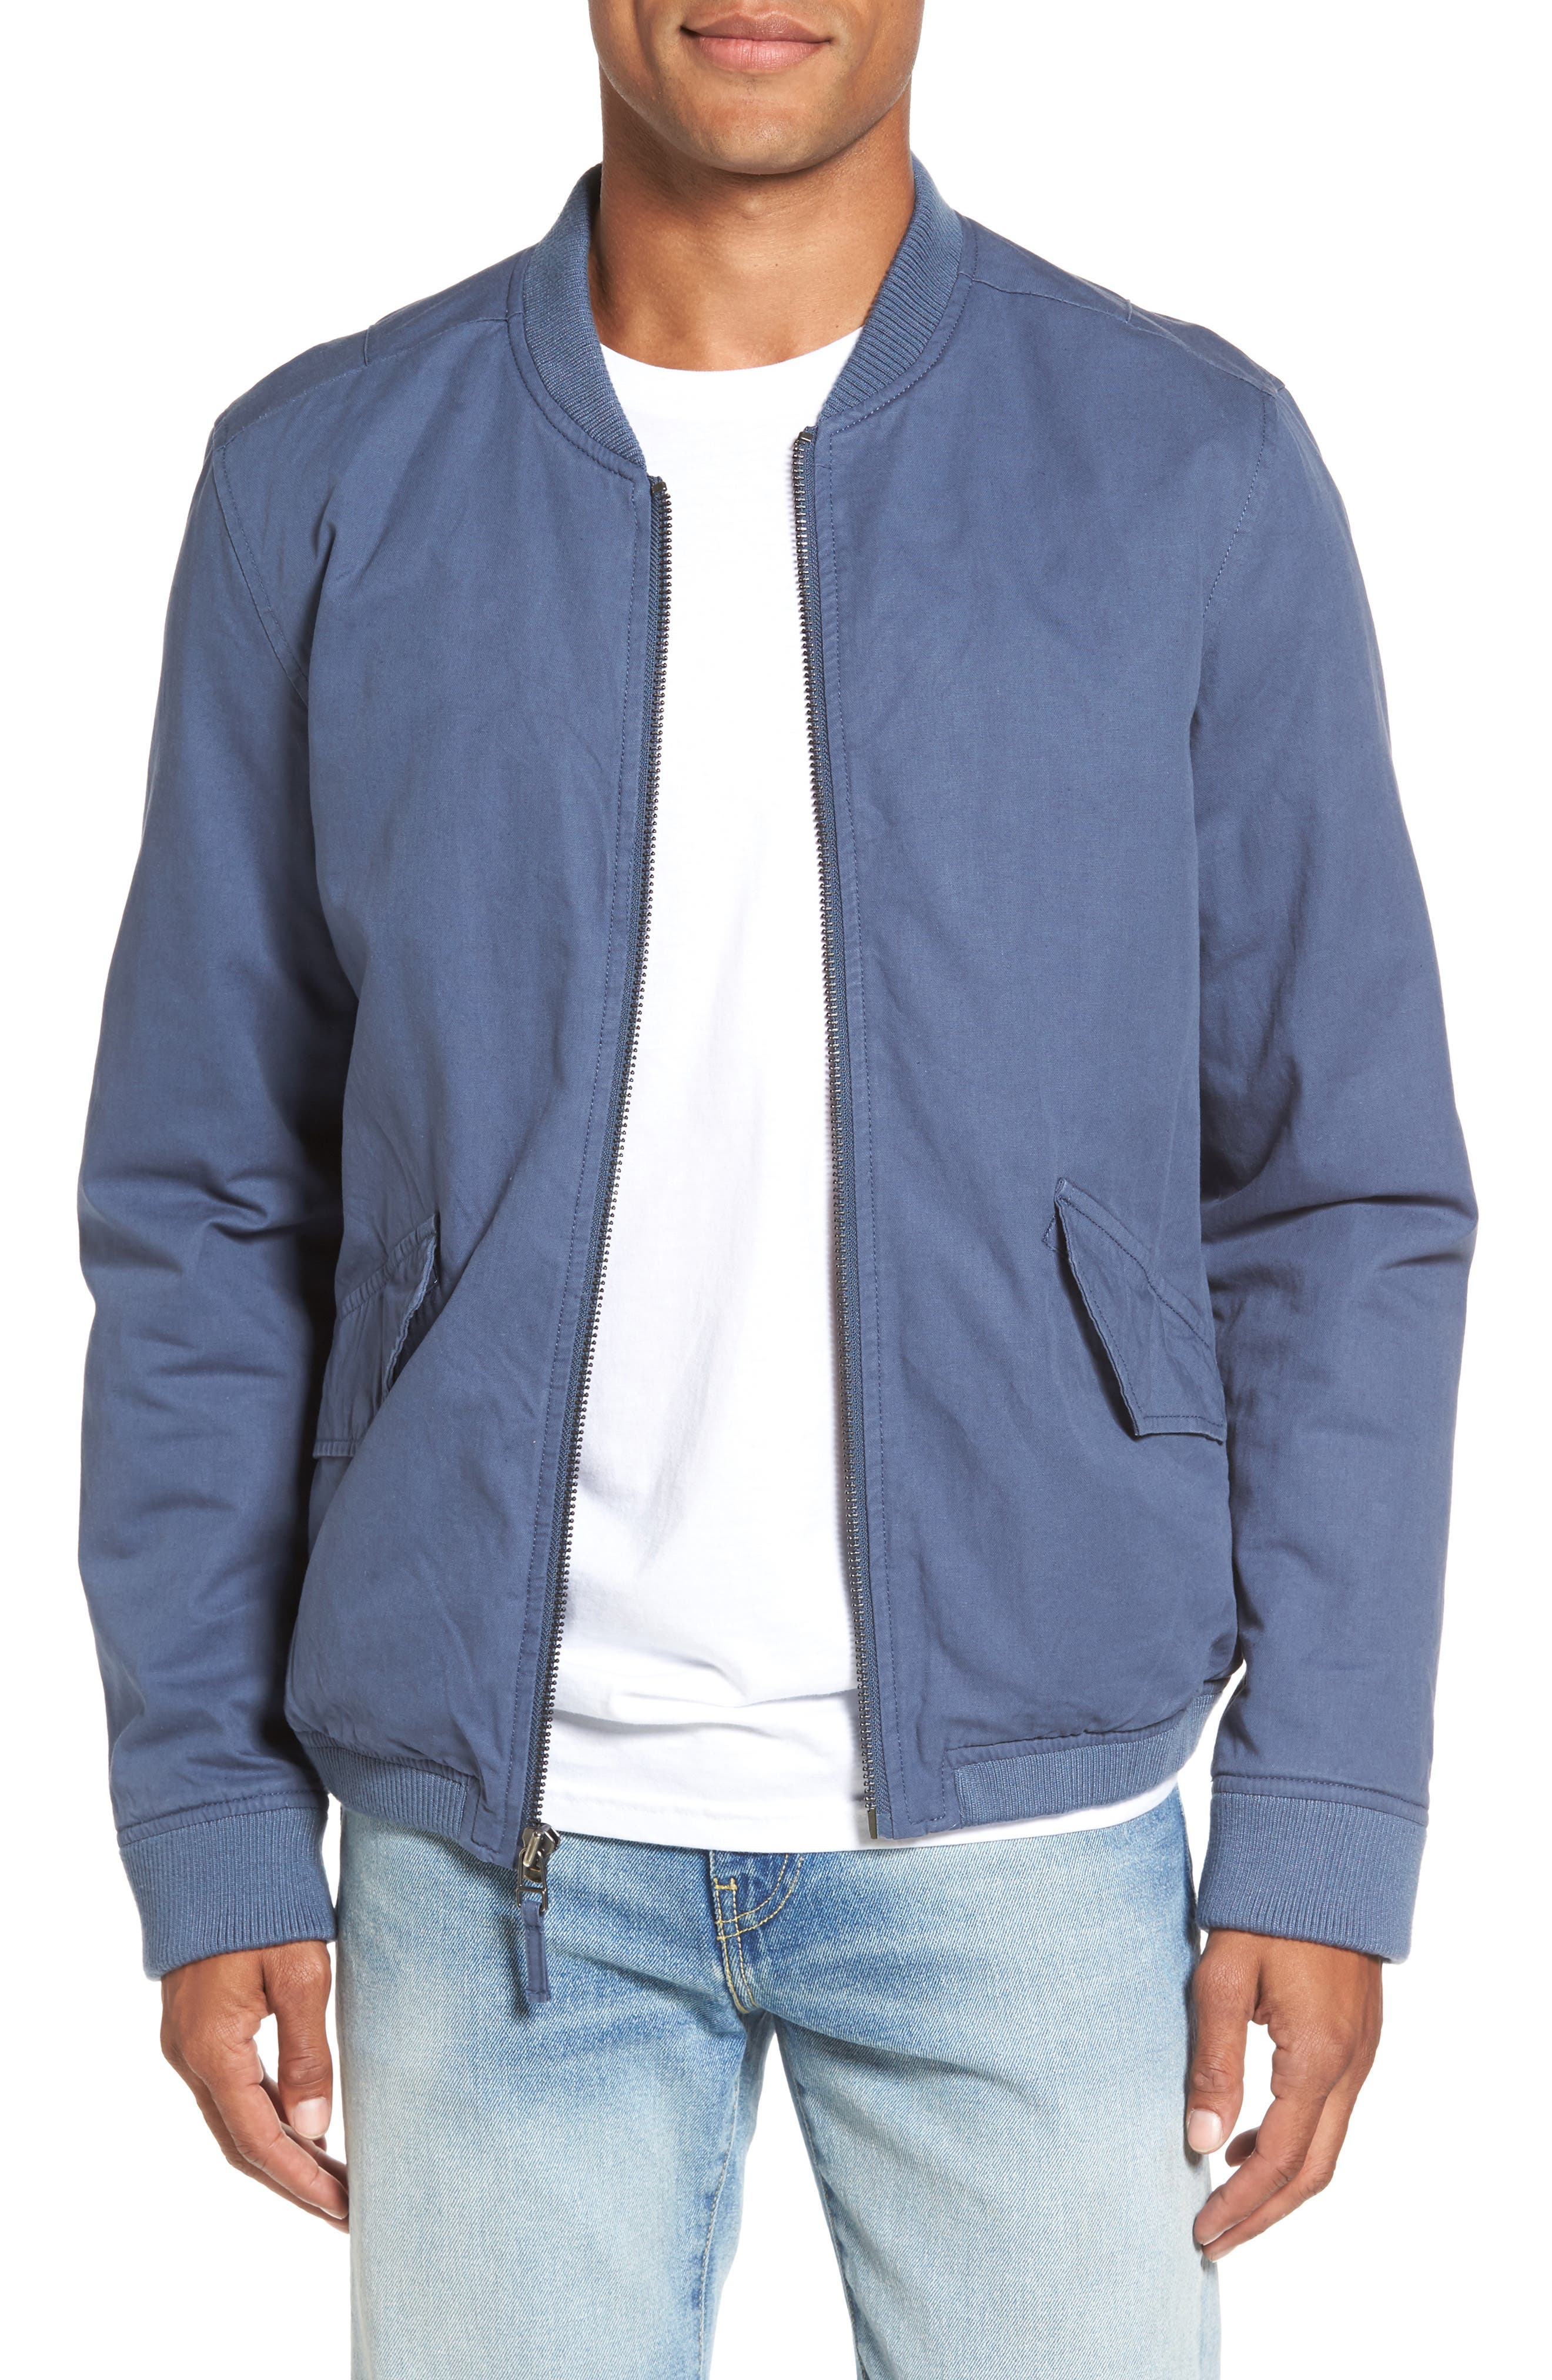 RVCA All City Bomber Jacket